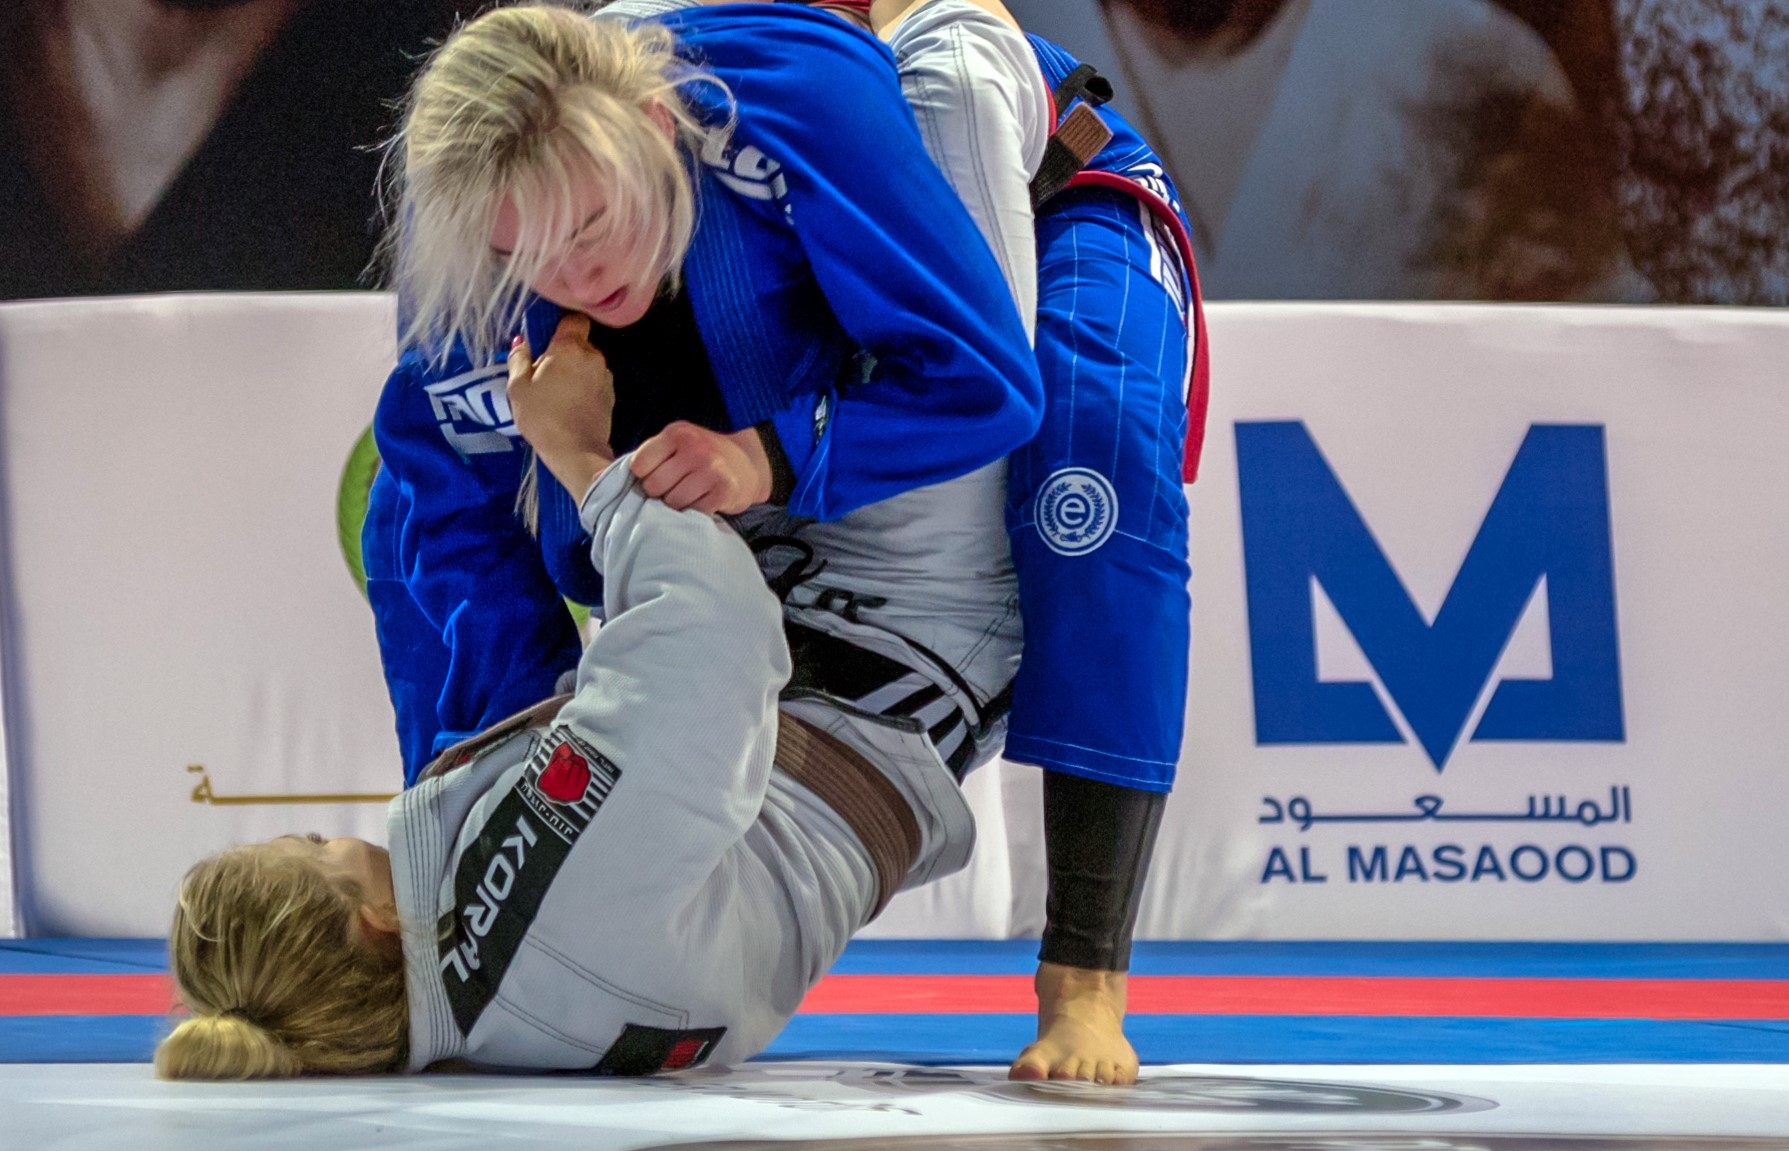 Al Masaood named gold partner of Abu Dhabi World Professional Jiu-Jitsu Championship 2019